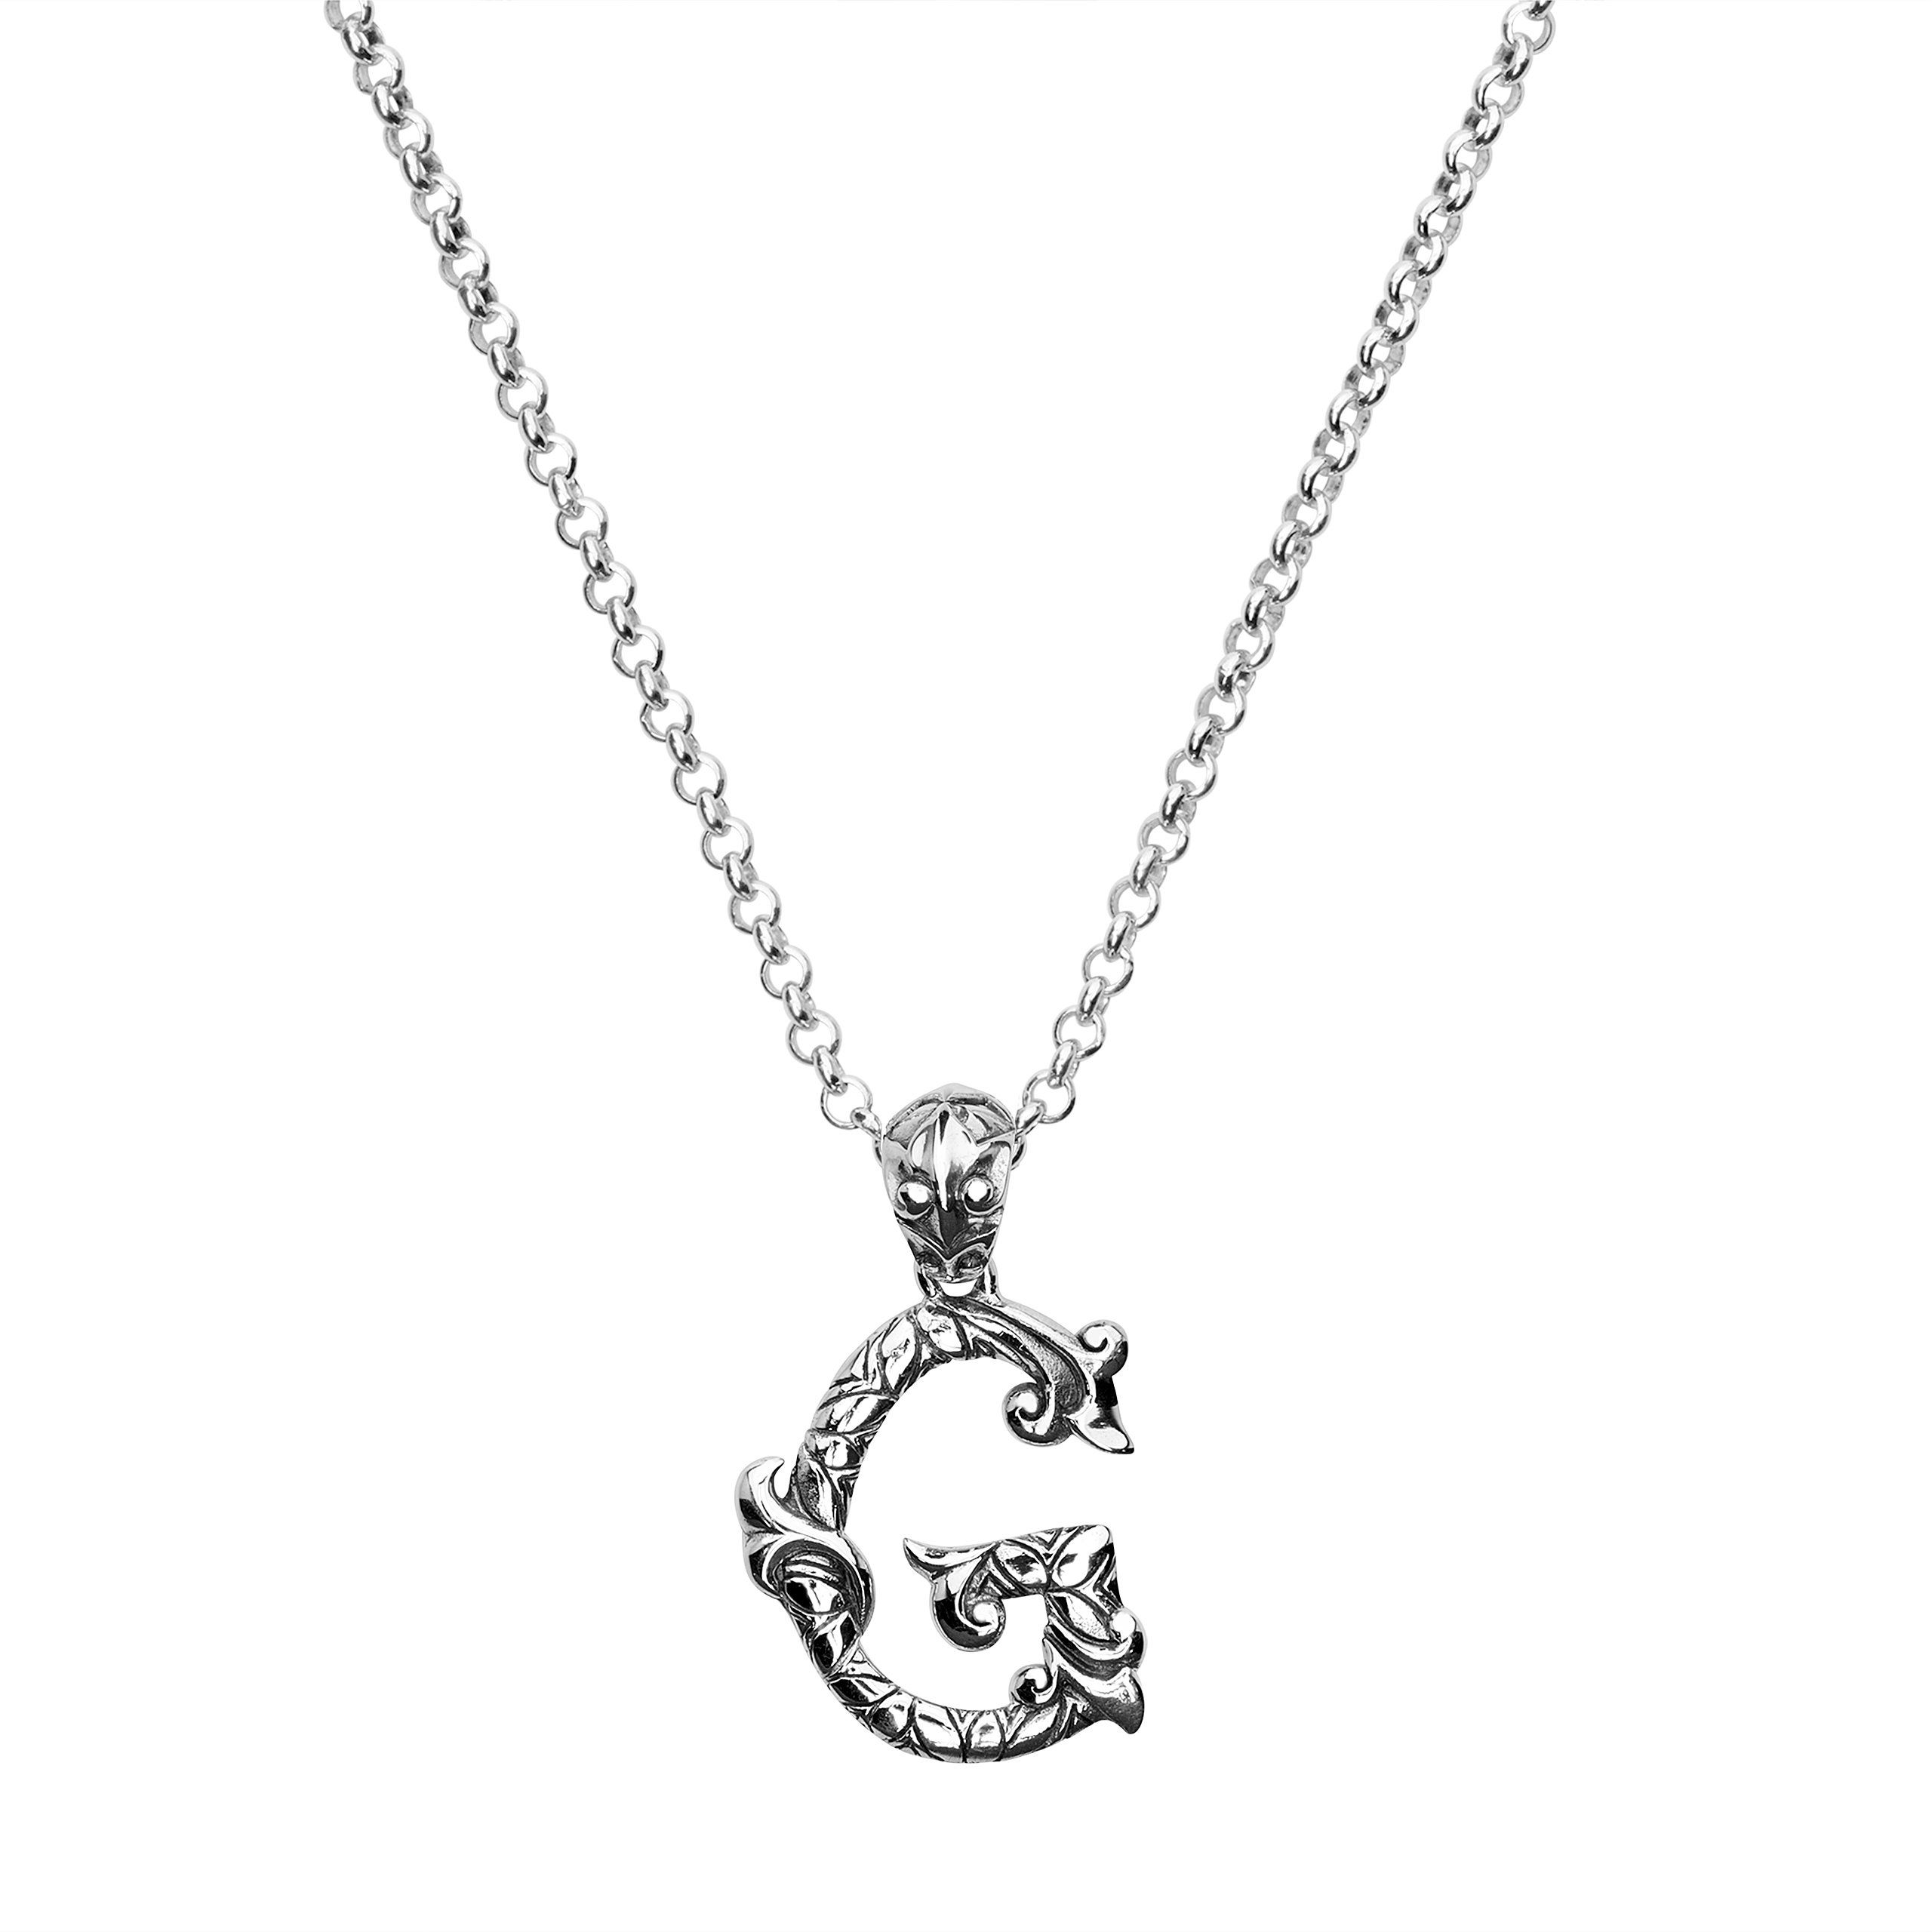 c white jewel gold src ladies alphabet g wg round sell s net jewelwesell letter diamond natural we cut initial q p dia prod solid pendant